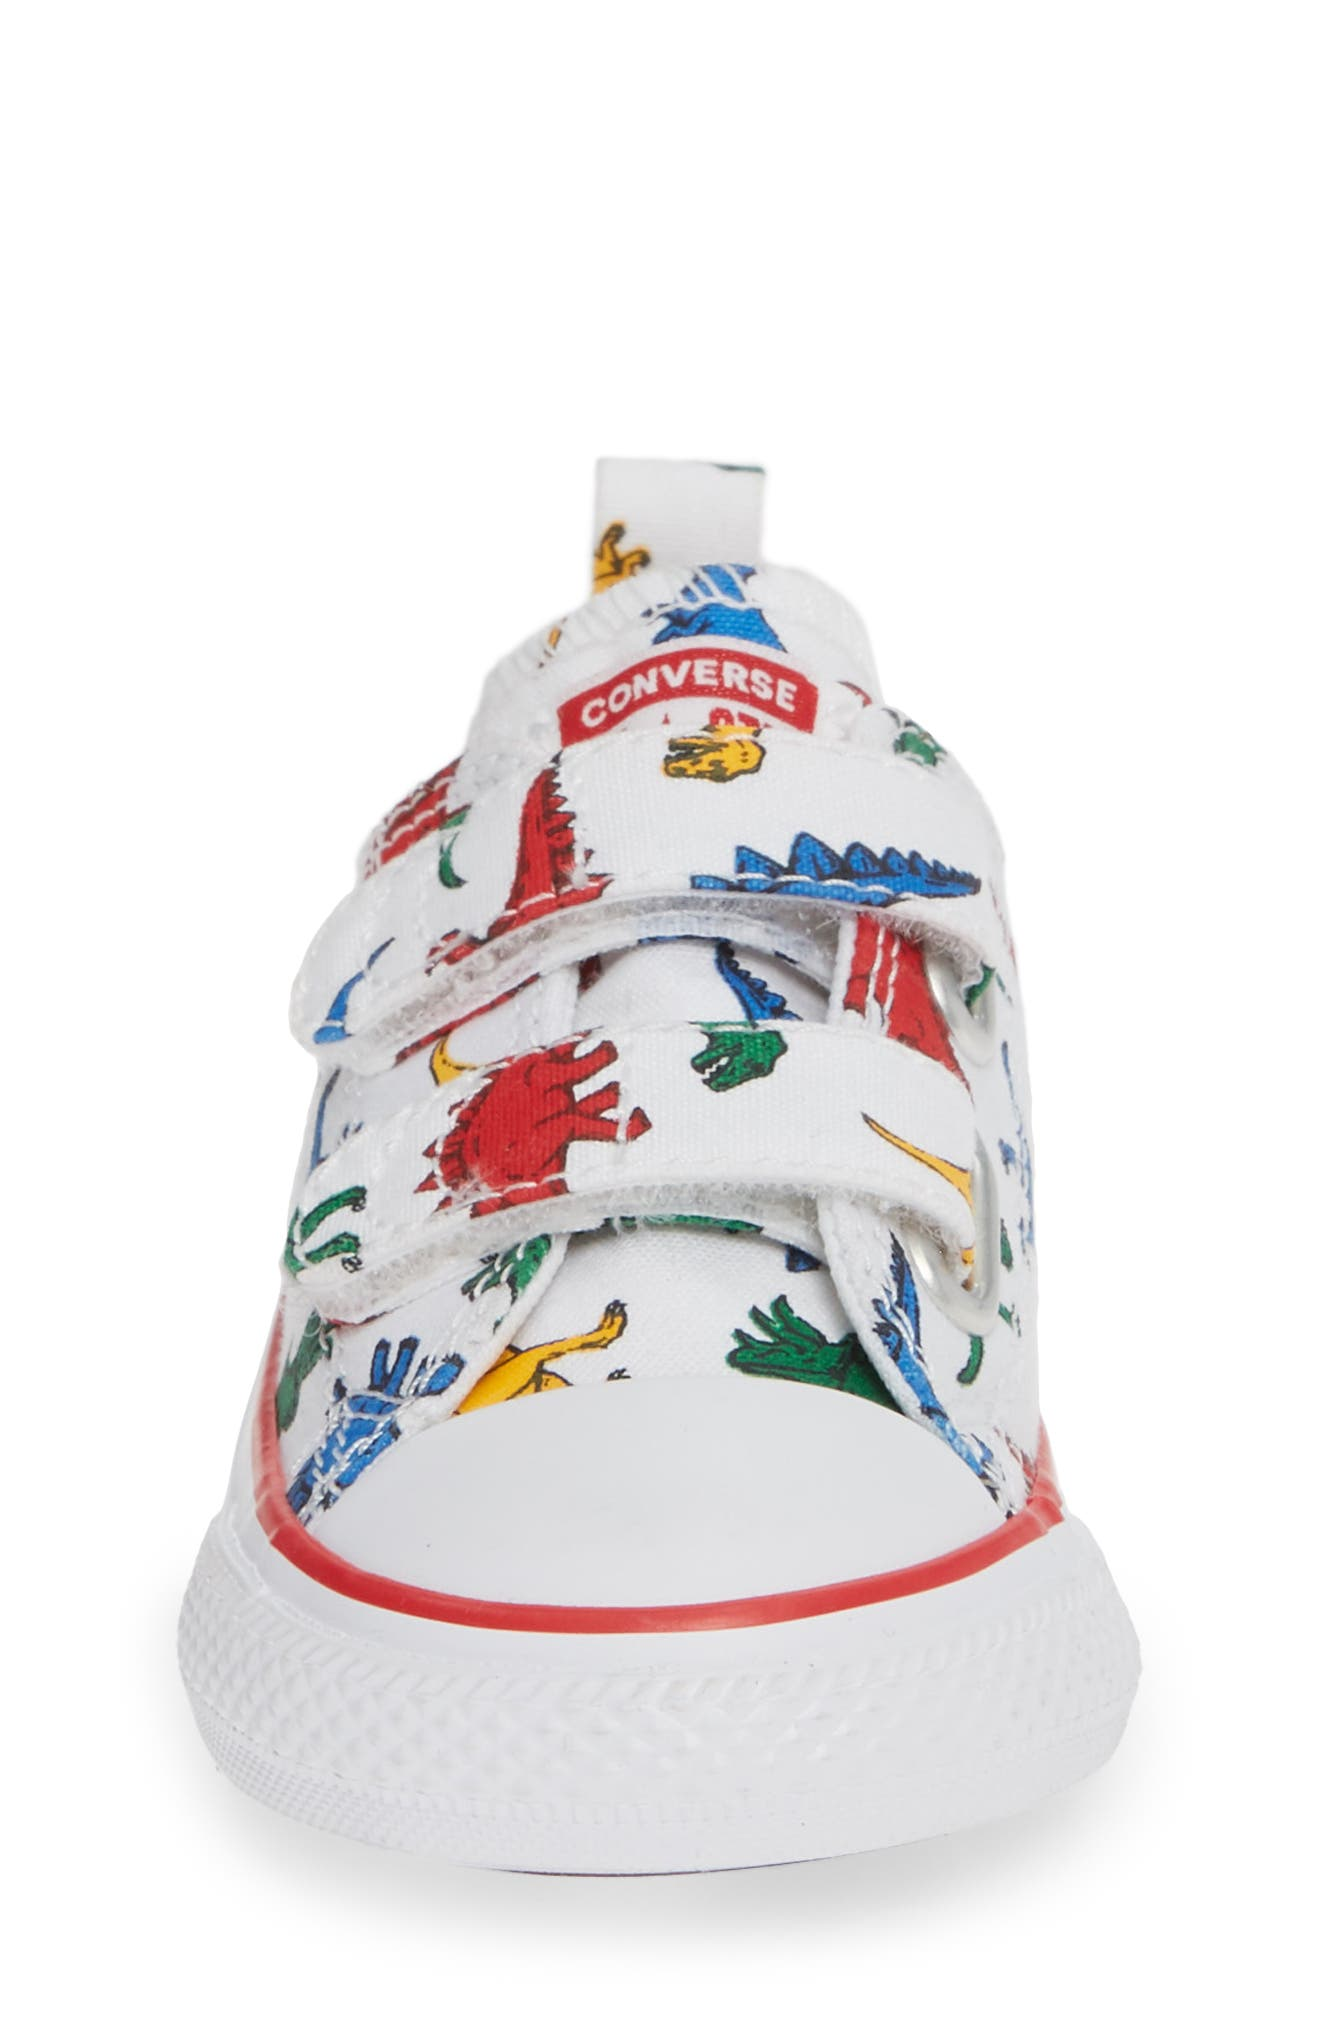 CONVERSE, Chuck Taylor<sup>®</sup> All Star<sup>®</sup> Ox Sneaker, Alternate thumbnail 4, color, WHITE/ ENAMEL RED/ BLUE DINO